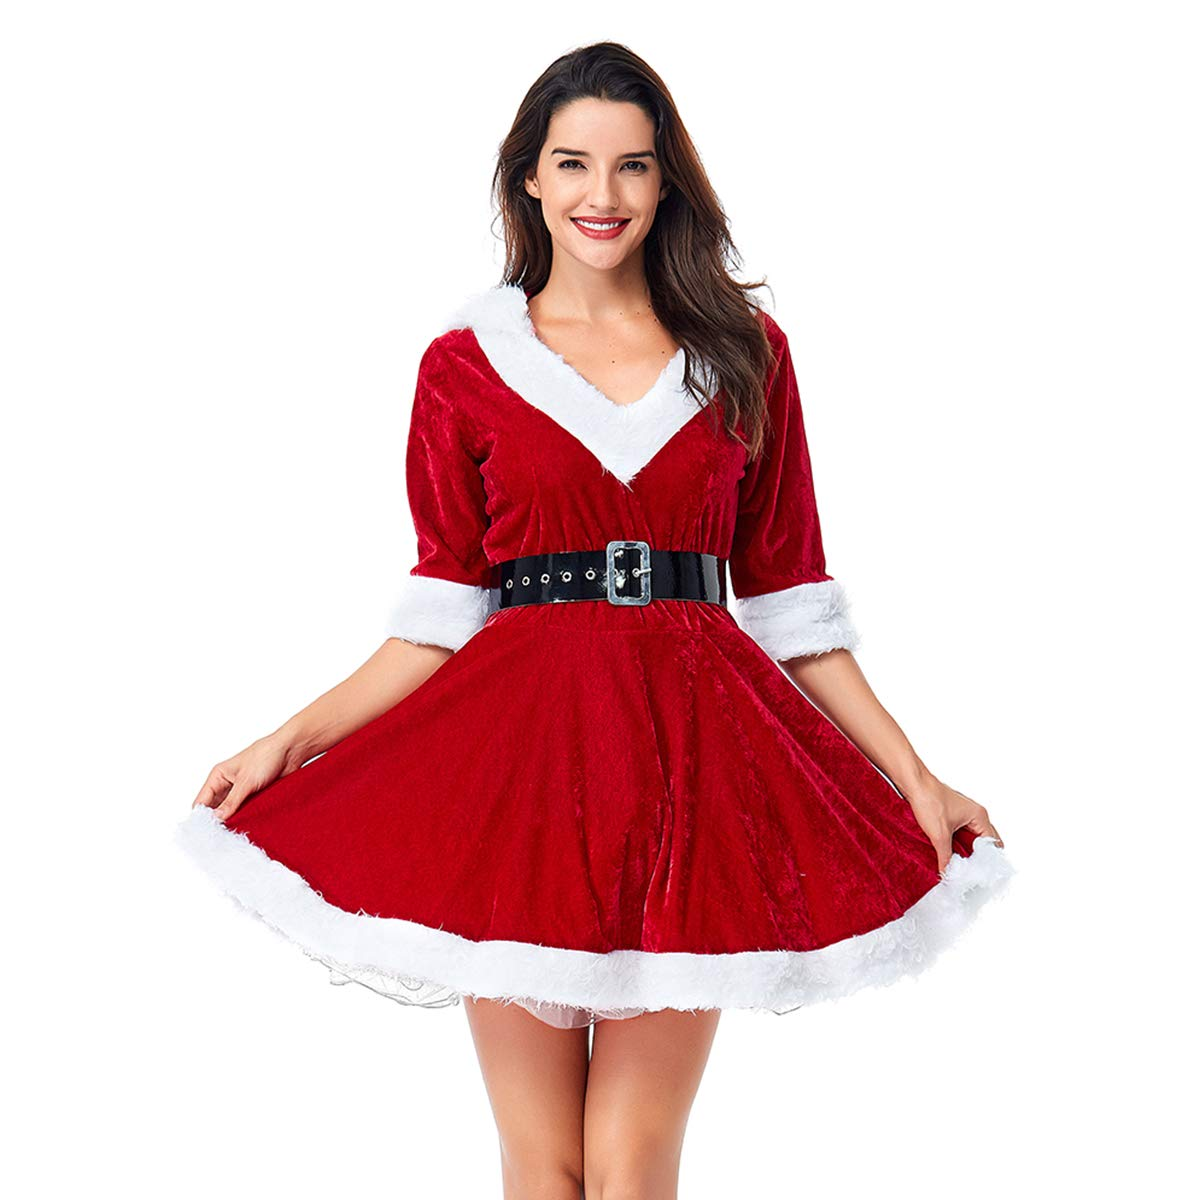 Quesera Women's Mrs. Claus Costume 2 Piece Hooded Santa Sweetie Christmas Outfit